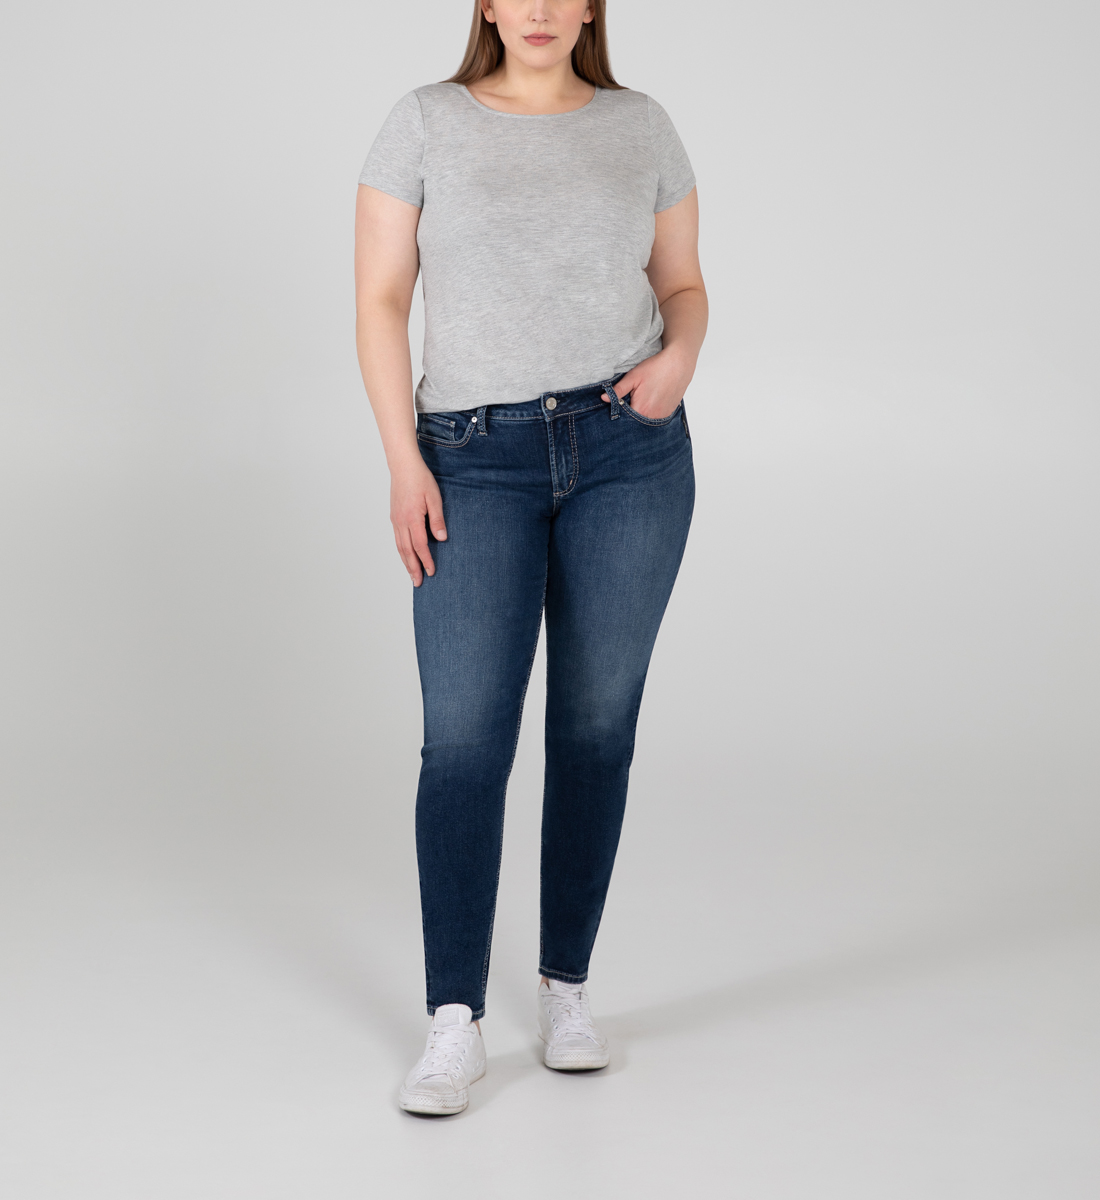 Silver Jeans Elyse Mid Rise Skinny Jeans Plus Size